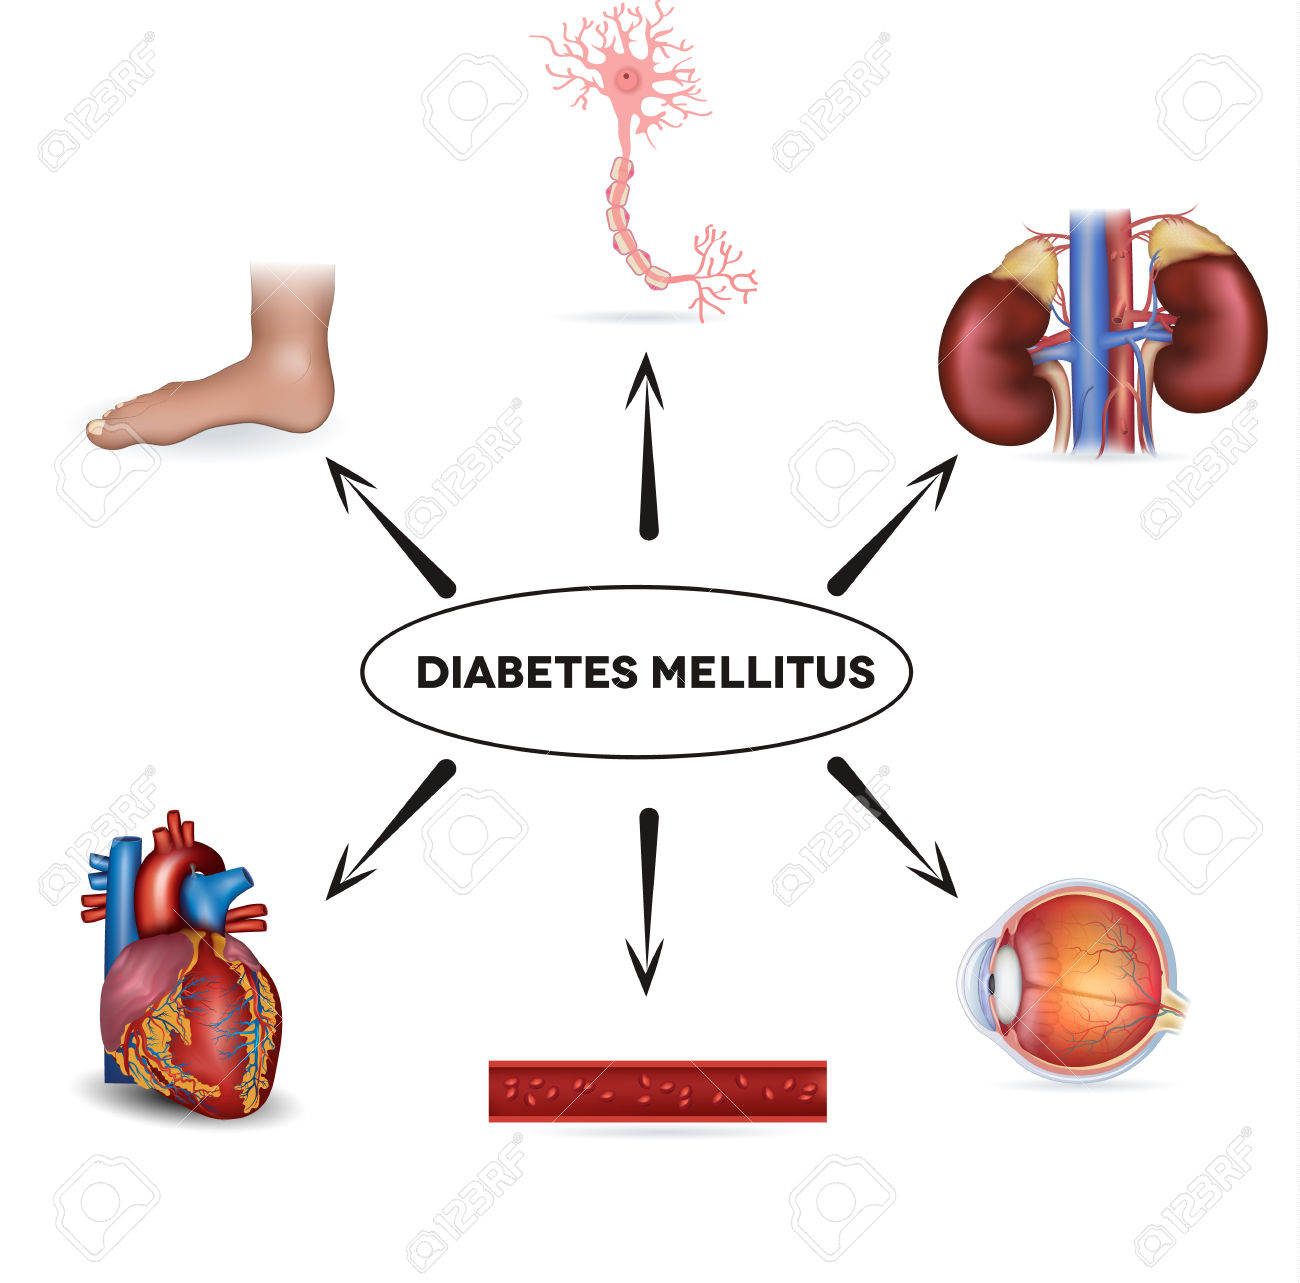 Diabetes Mellitus Affected Areas Diabetes Affects Nerves, Kidneys.